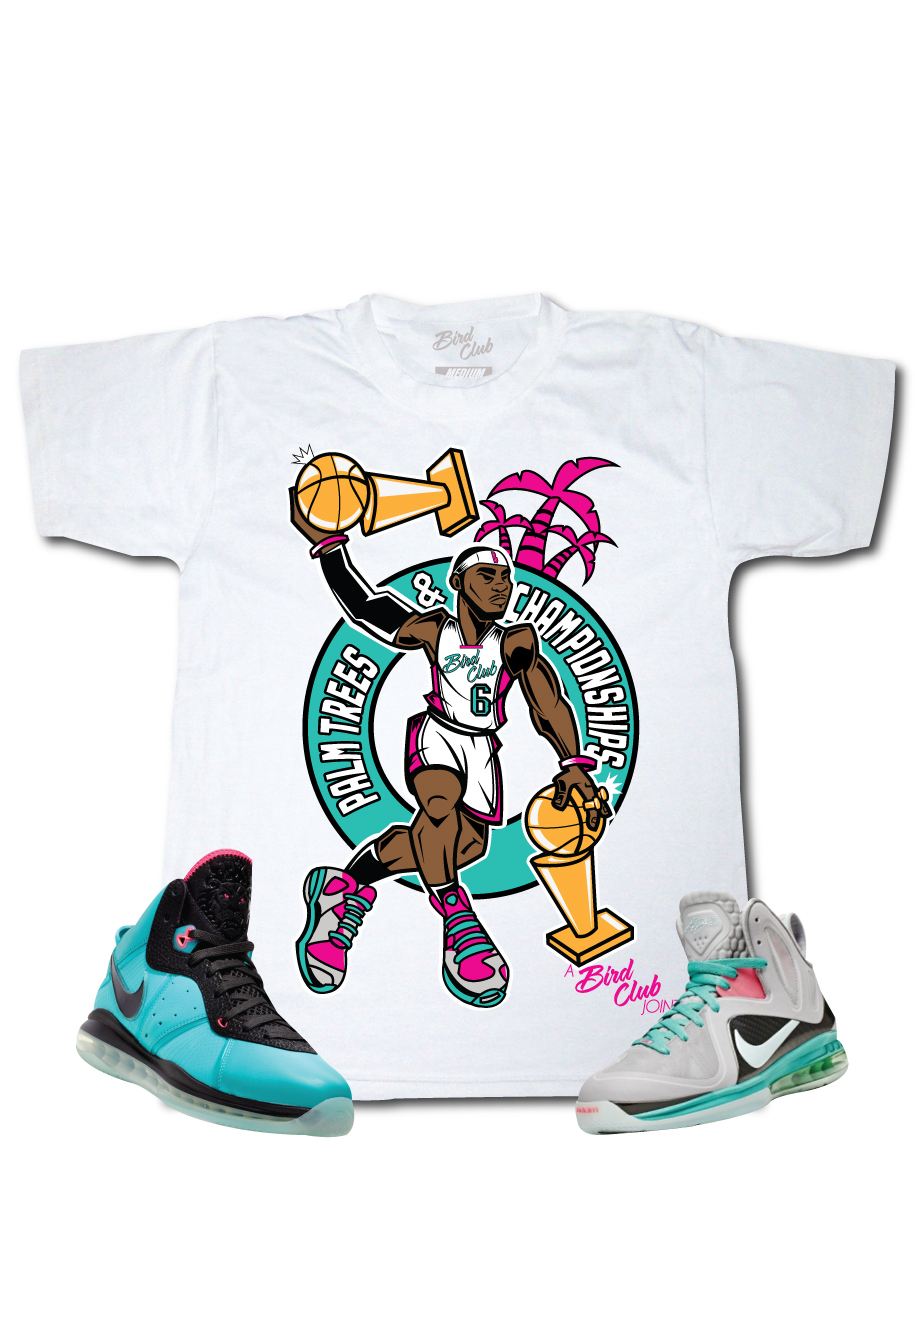 c9db44e660ddf8 Lebron 9 Miami Vice South Beach Shoes   Bird Club Clothing T-Shirt ...